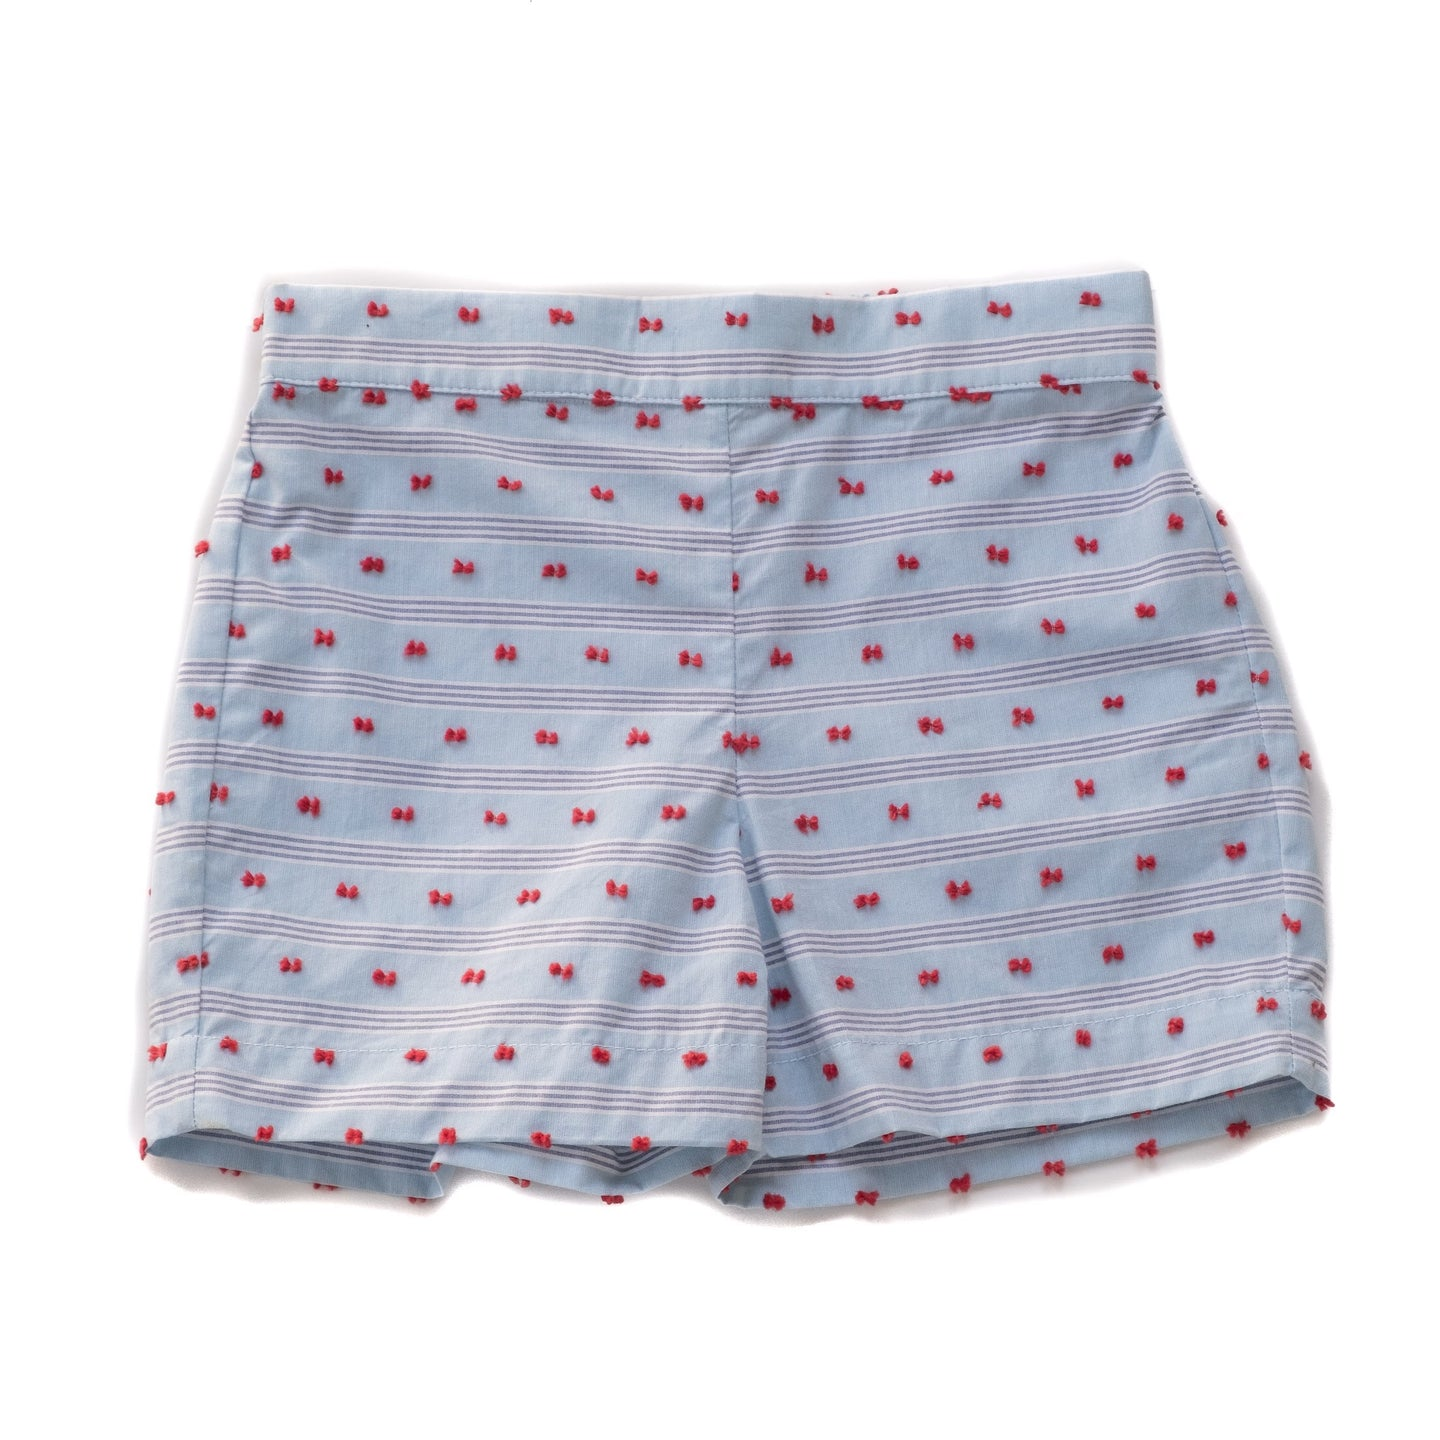 Sail Away Gunter Shorts Separates Red and Blue Plumeti